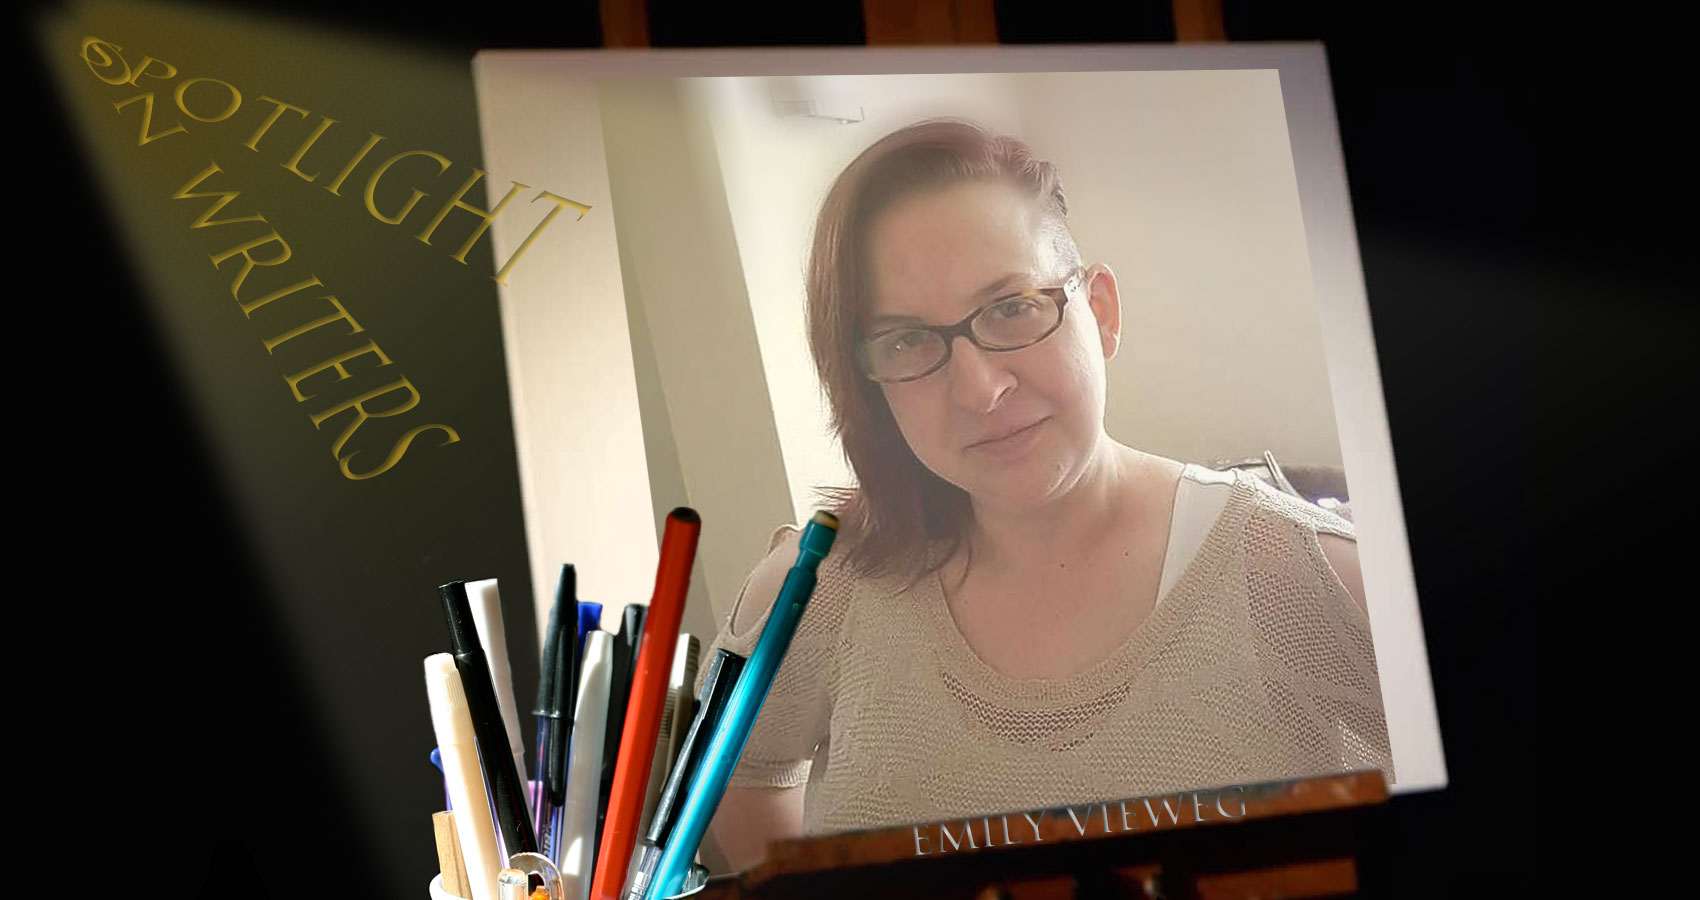 Spotlight On Writers - Emily Vieweg at Spillwords.com